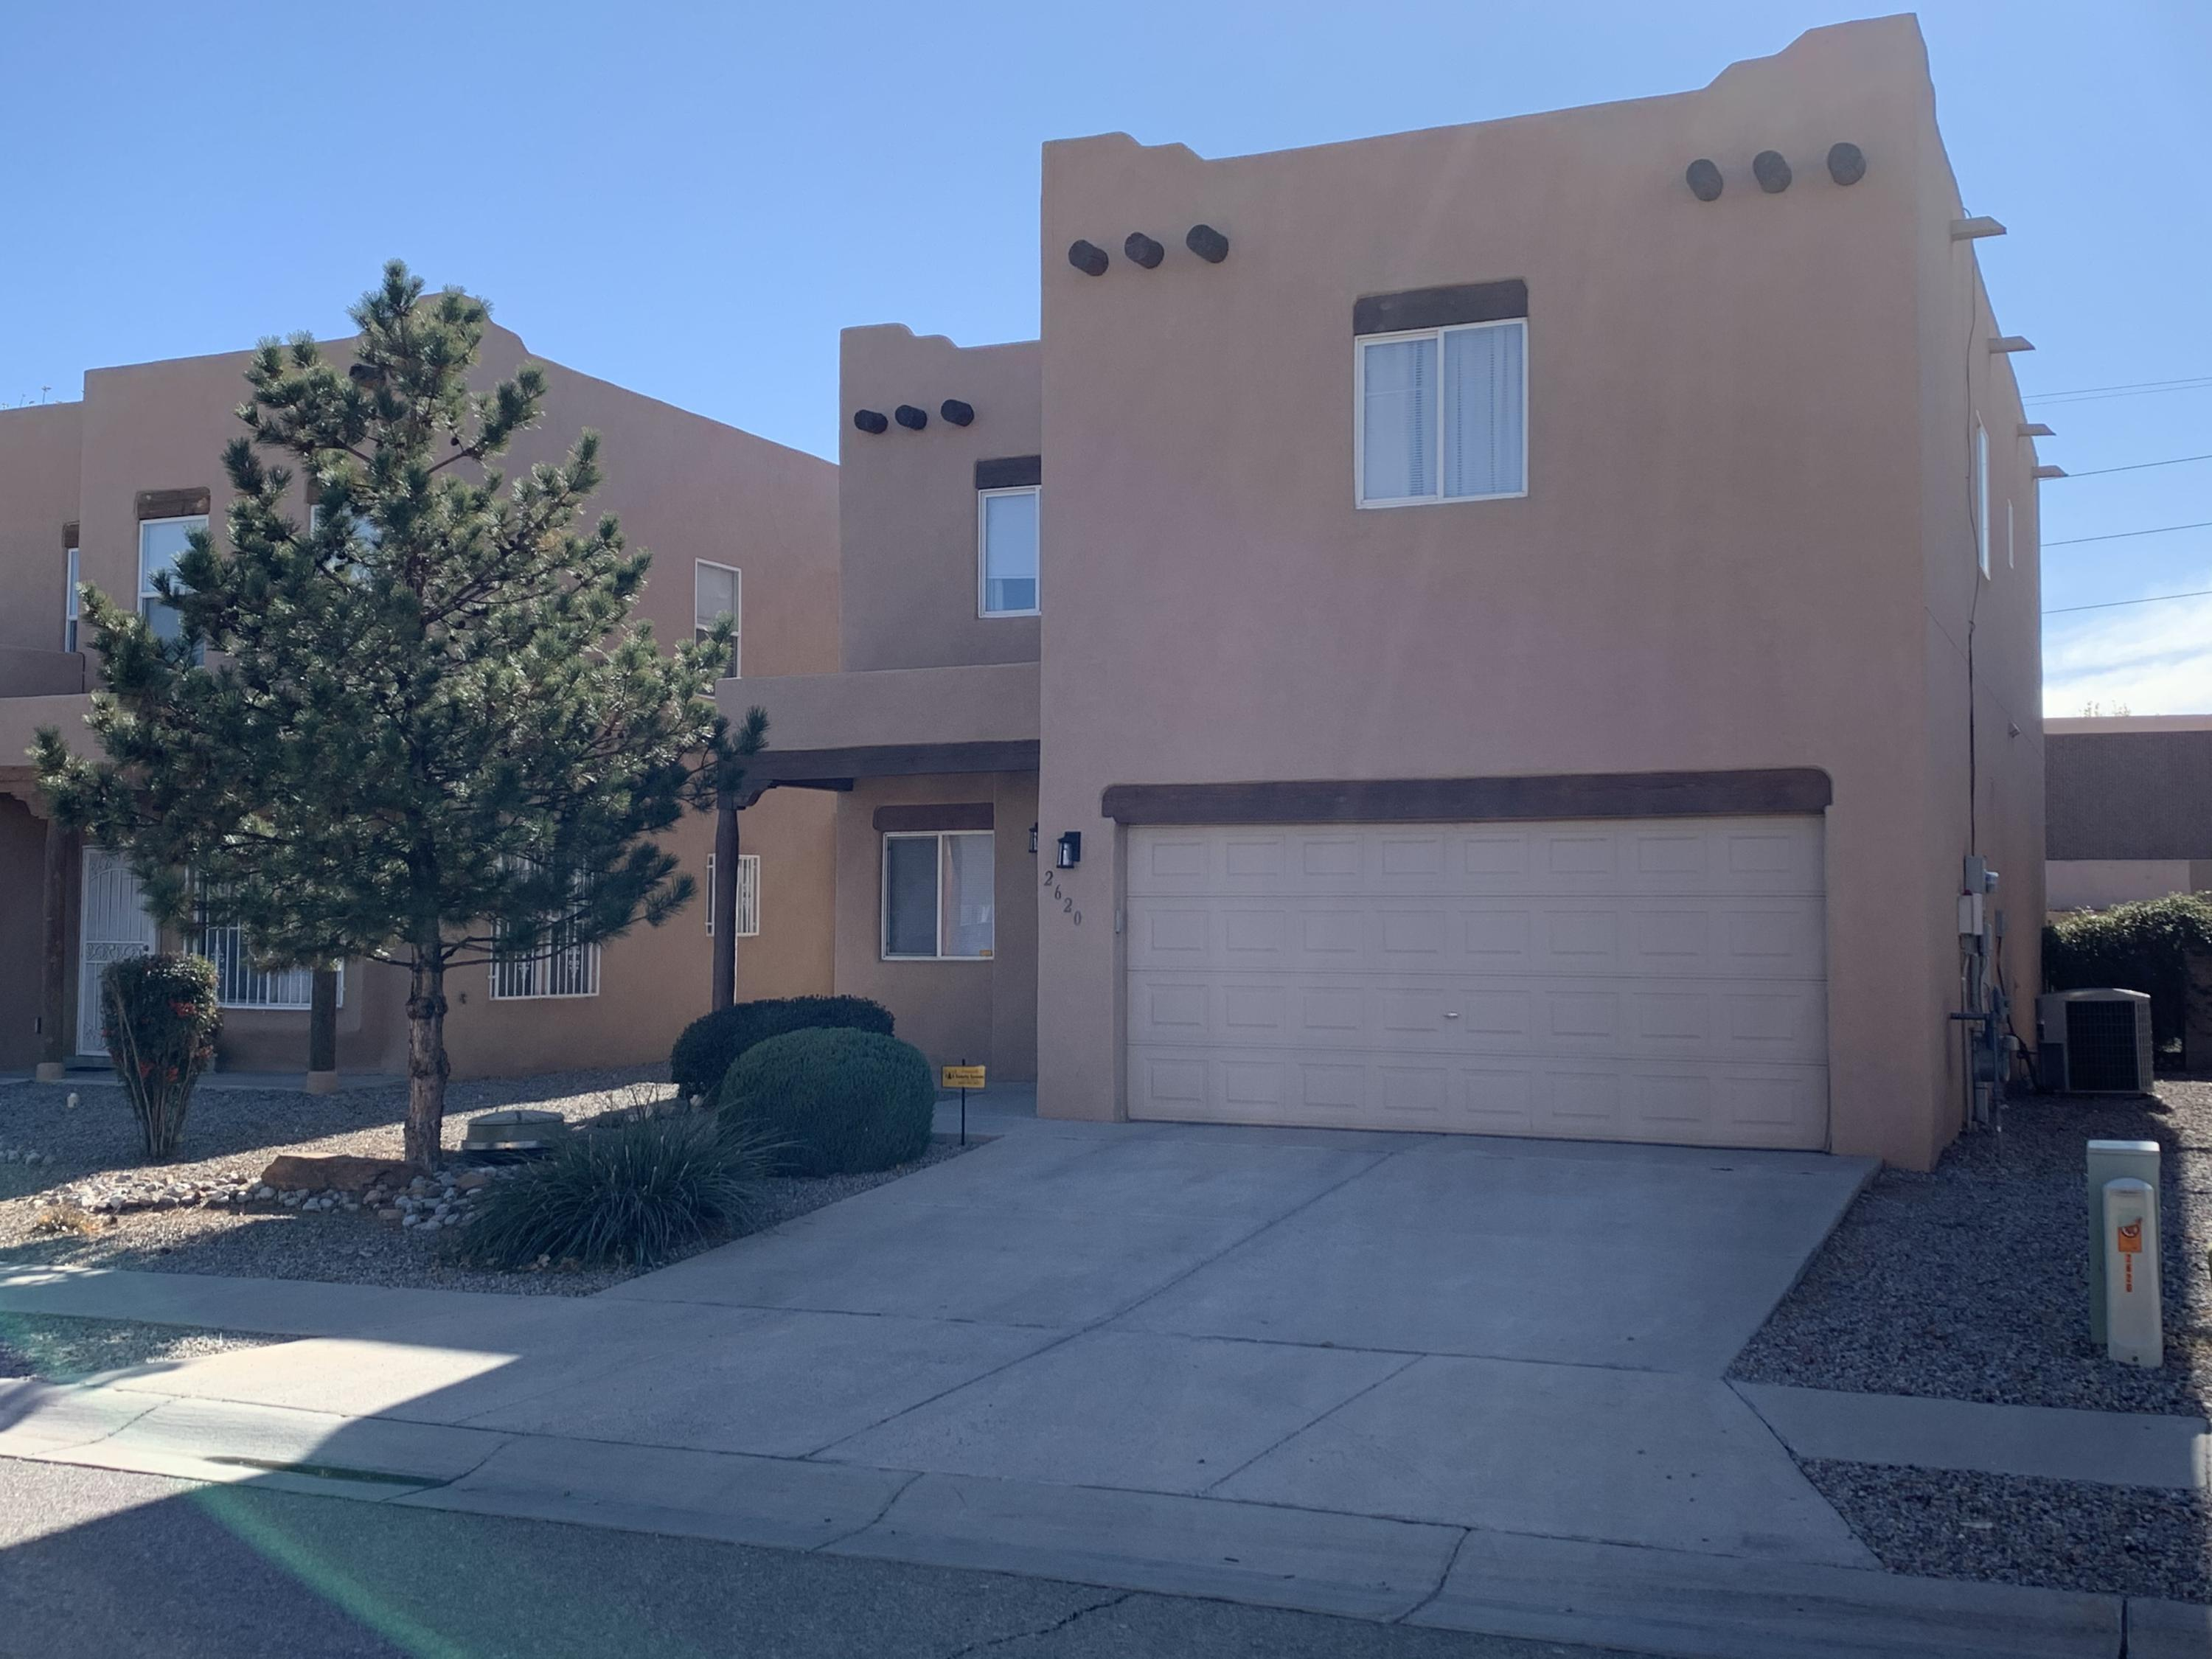 Schedule to see this Beautiful home before its gone! Located near Old Town and the new Sawmill Market. Over 2100 sq ft with 4 Bedrooms and 3 Bathrooms. All Stainless steel kitchen appliances stay. Upgraded Master bath with Jacuzzi tub. Loft upstairs for a home office or flex space. Nest Thermostat and Ring security system also stay with the home. Don't wait on this one!